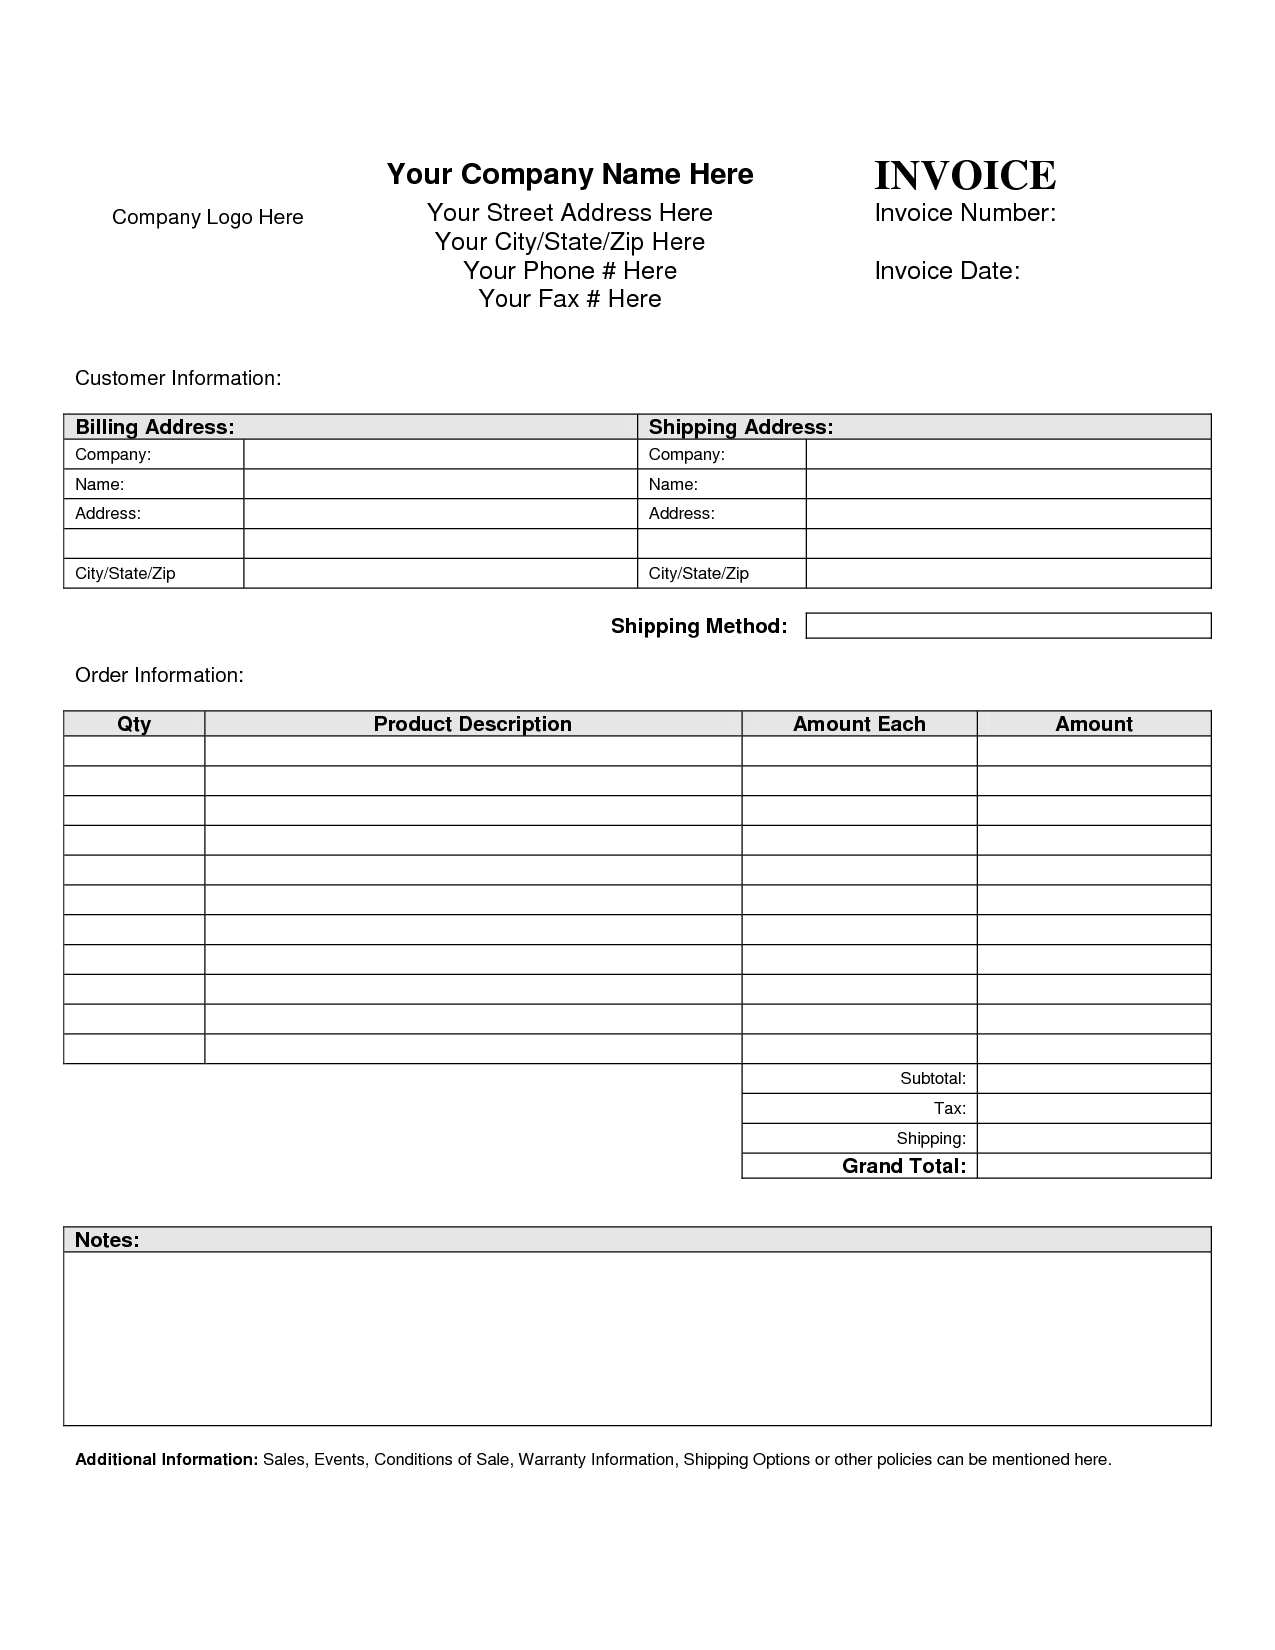 blank invoice template blank invoice sample of invoice format